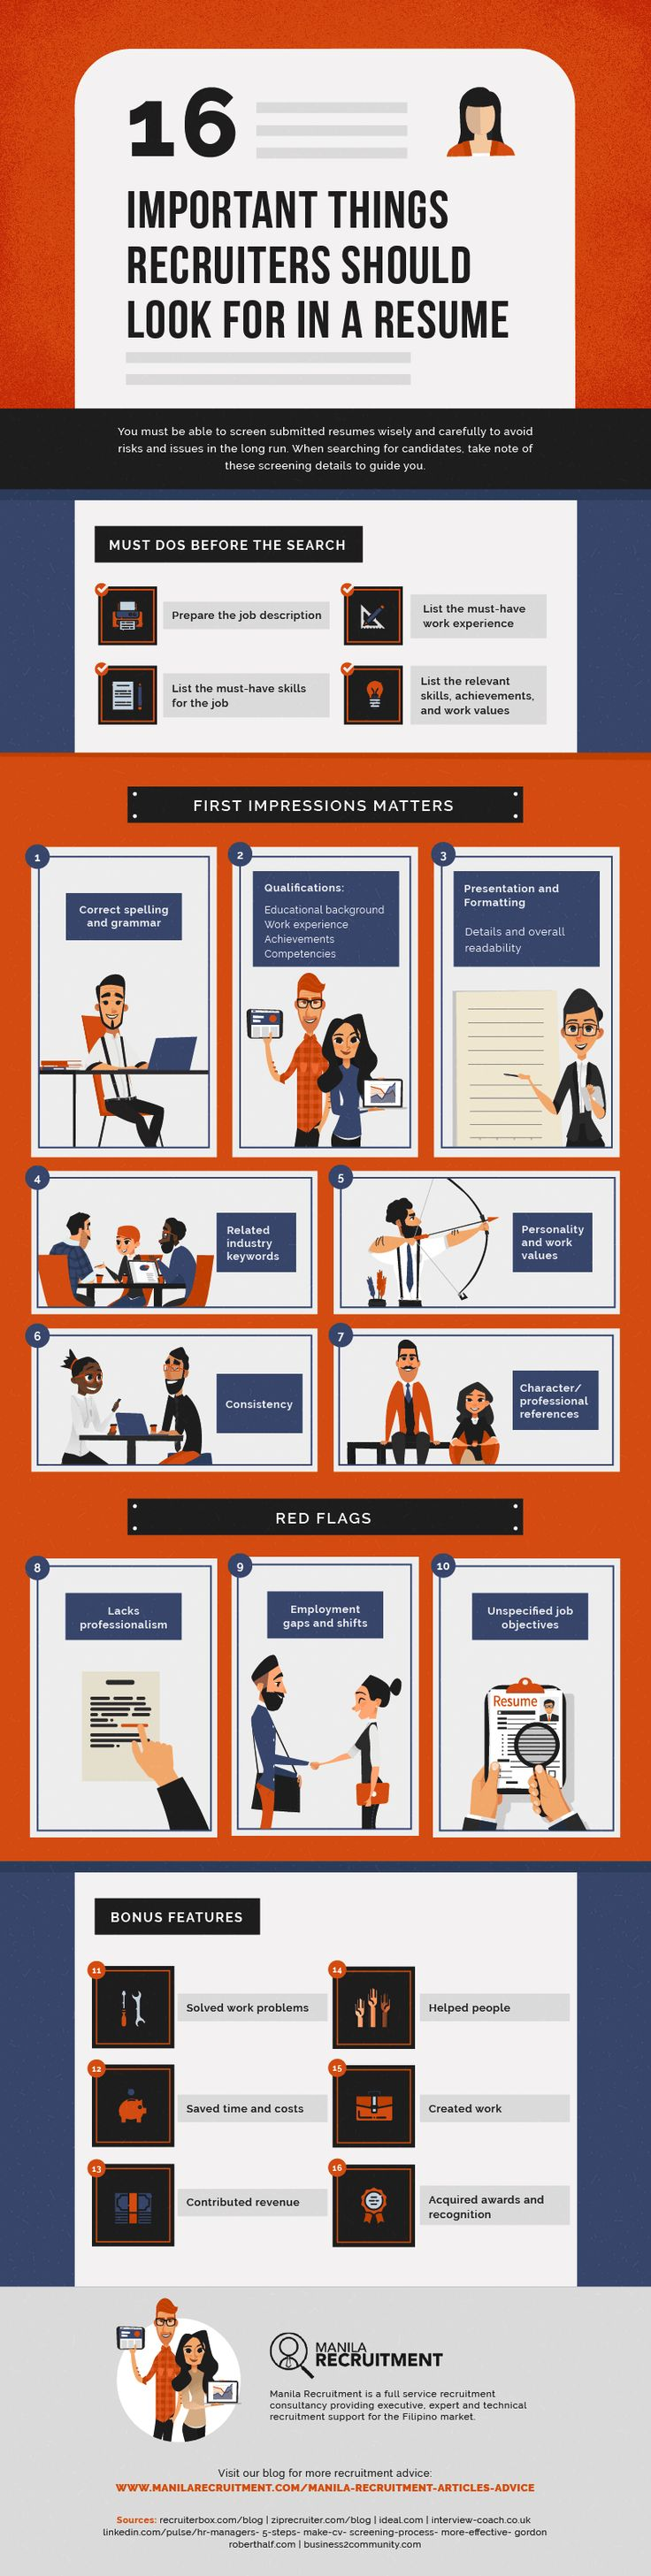 219 best resume images on pinterest resume tips interview and